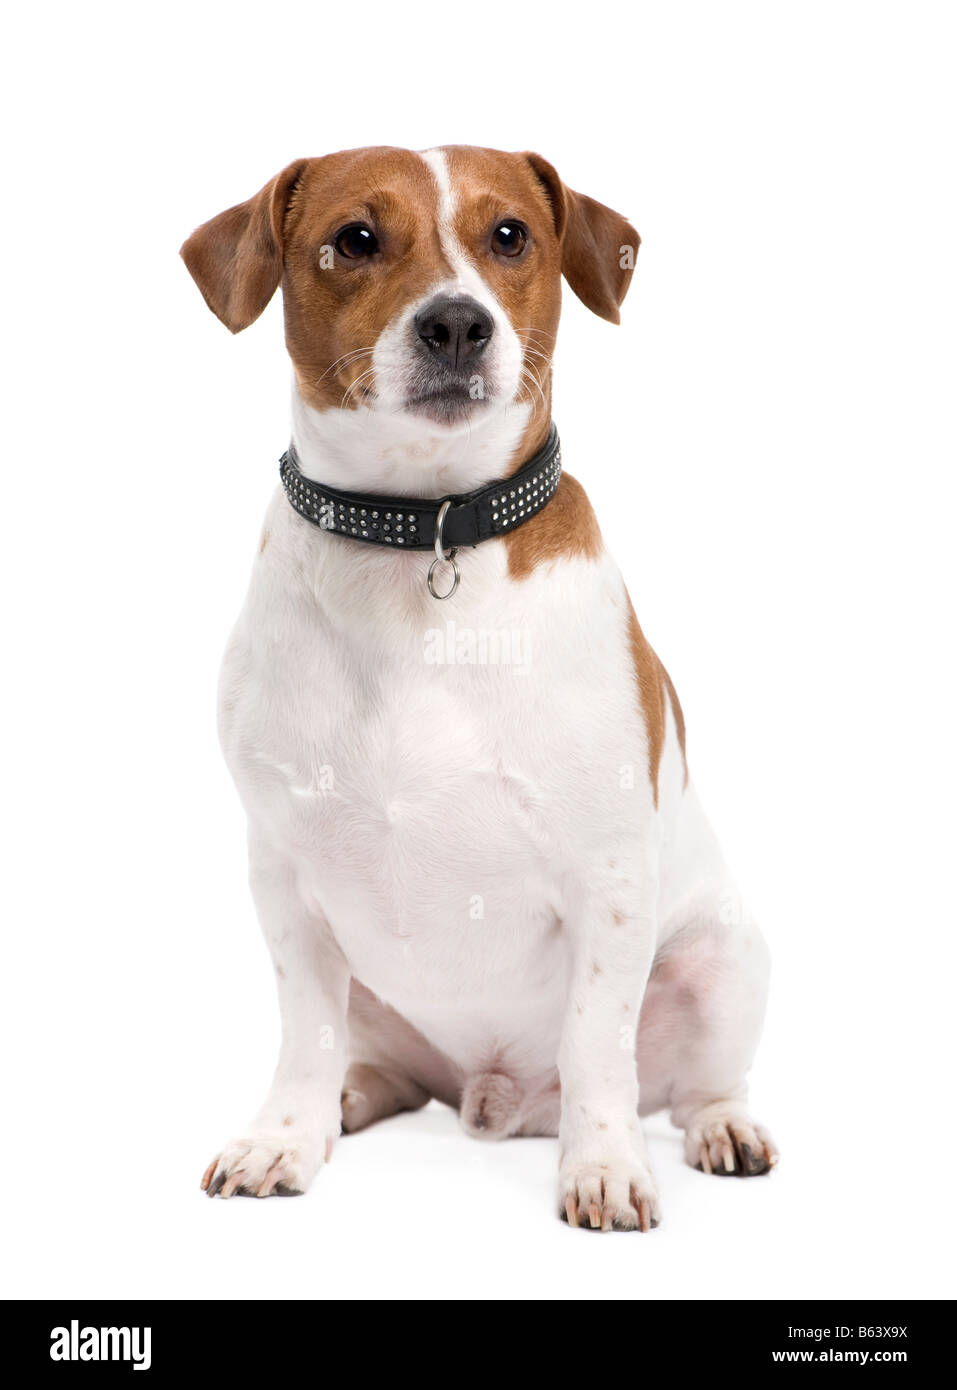 Jack russell 3 years in front of a white background - Stock Image